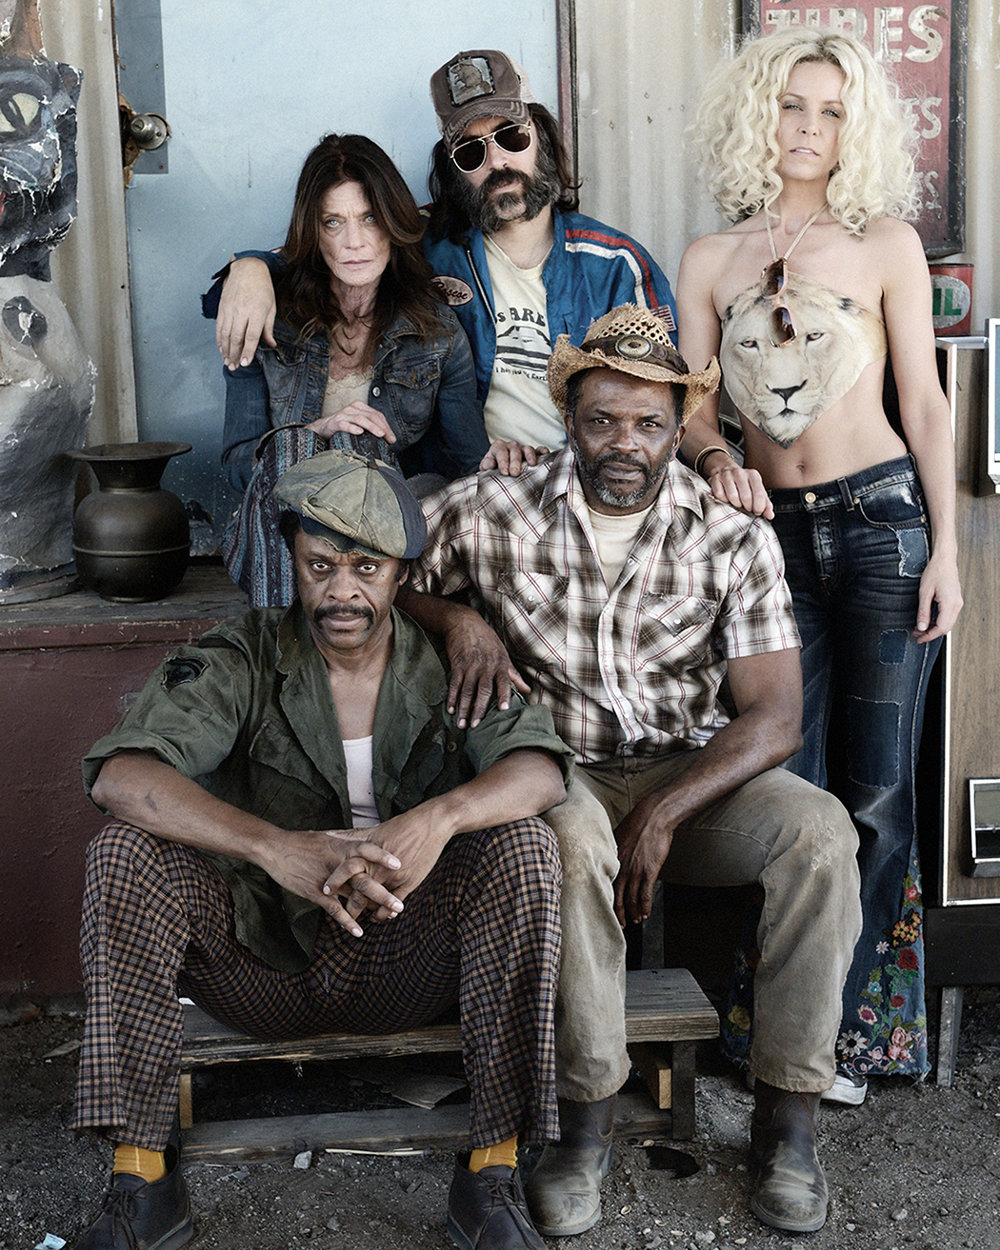 Rob Zombie's 31 with Meg Foster, Sheri Moon Zombie, Kevin Jackson and Lawrence-Hilton Jacobs.